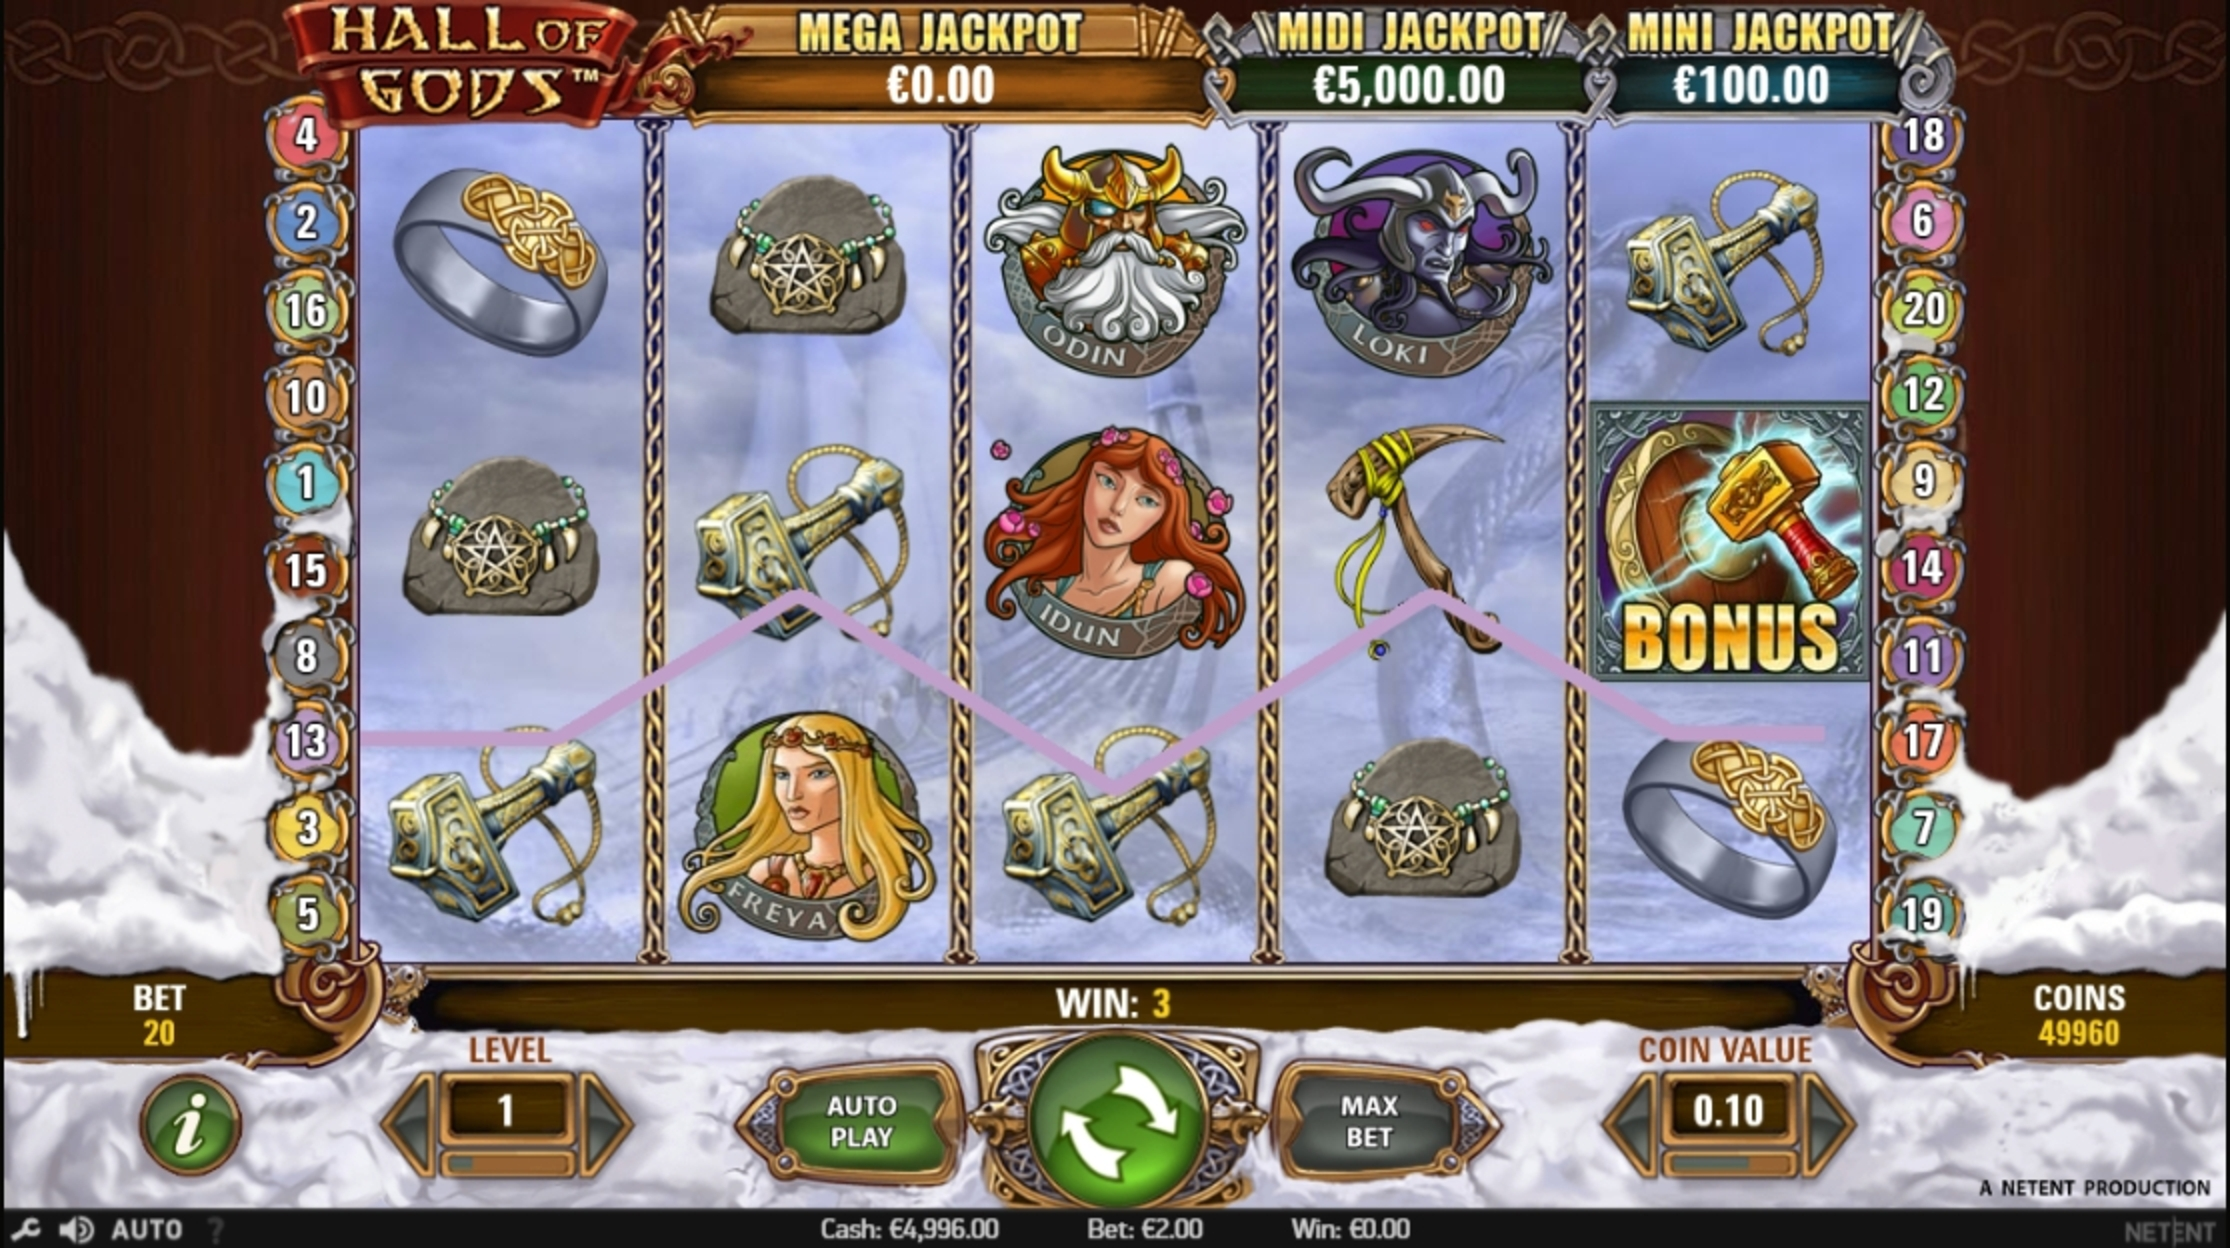 Win Money in Hall of Gods Free Slot Game by NetEnt